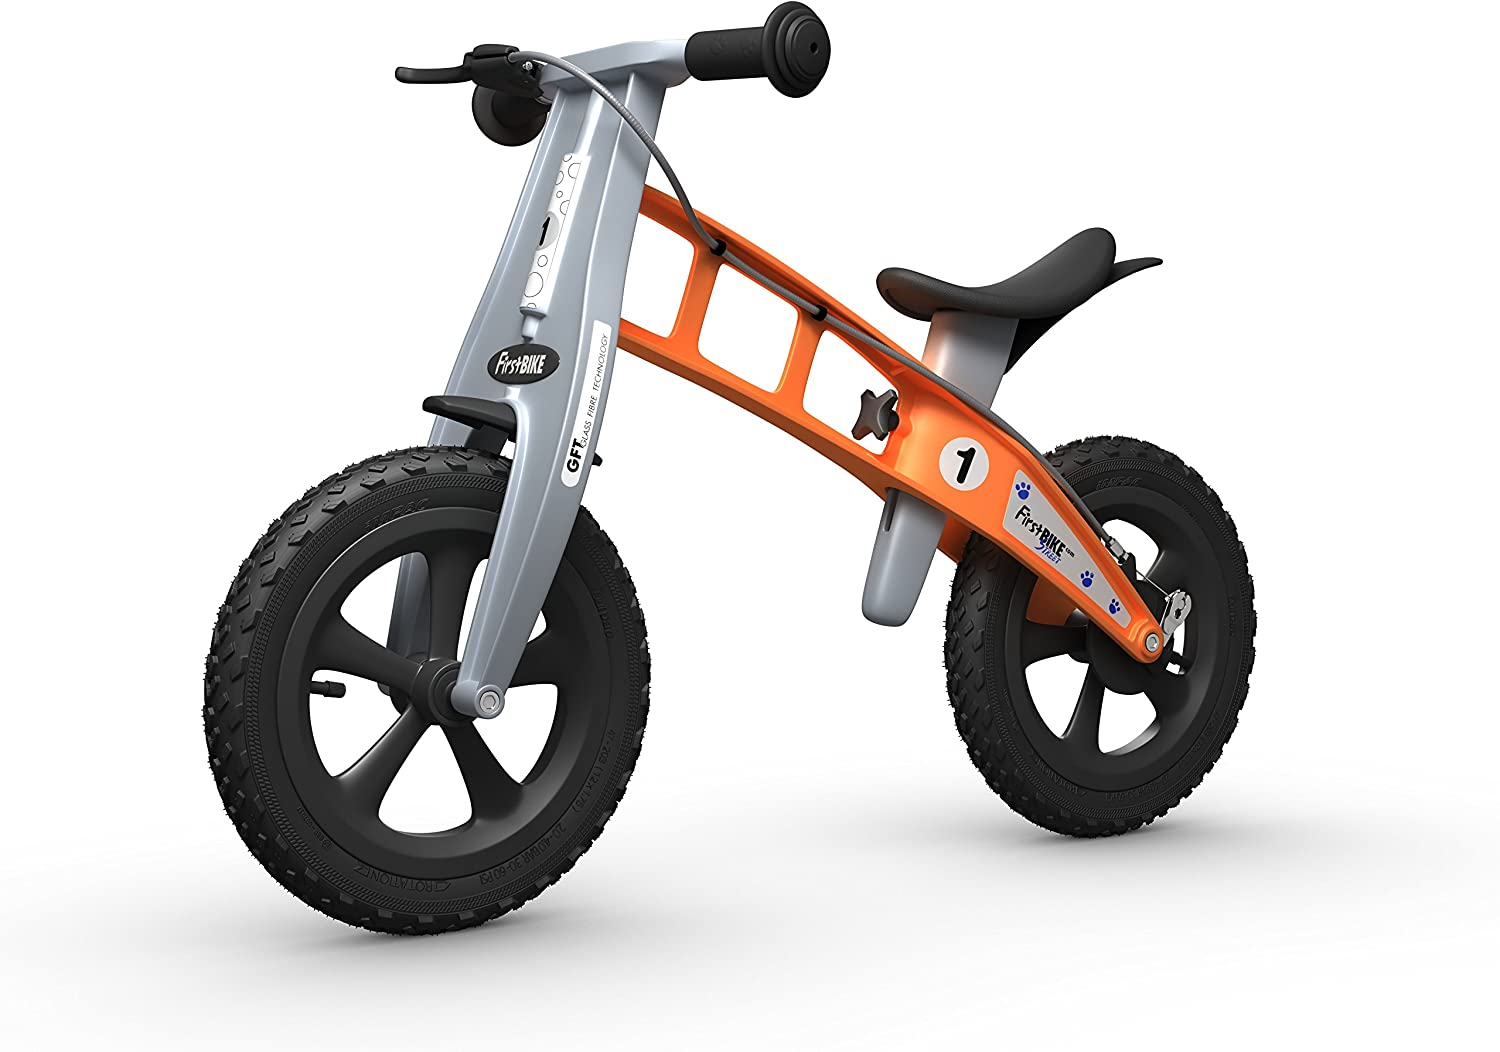 Top 10 Best Balance Bikes For Toddlers 2020 Reviews 6